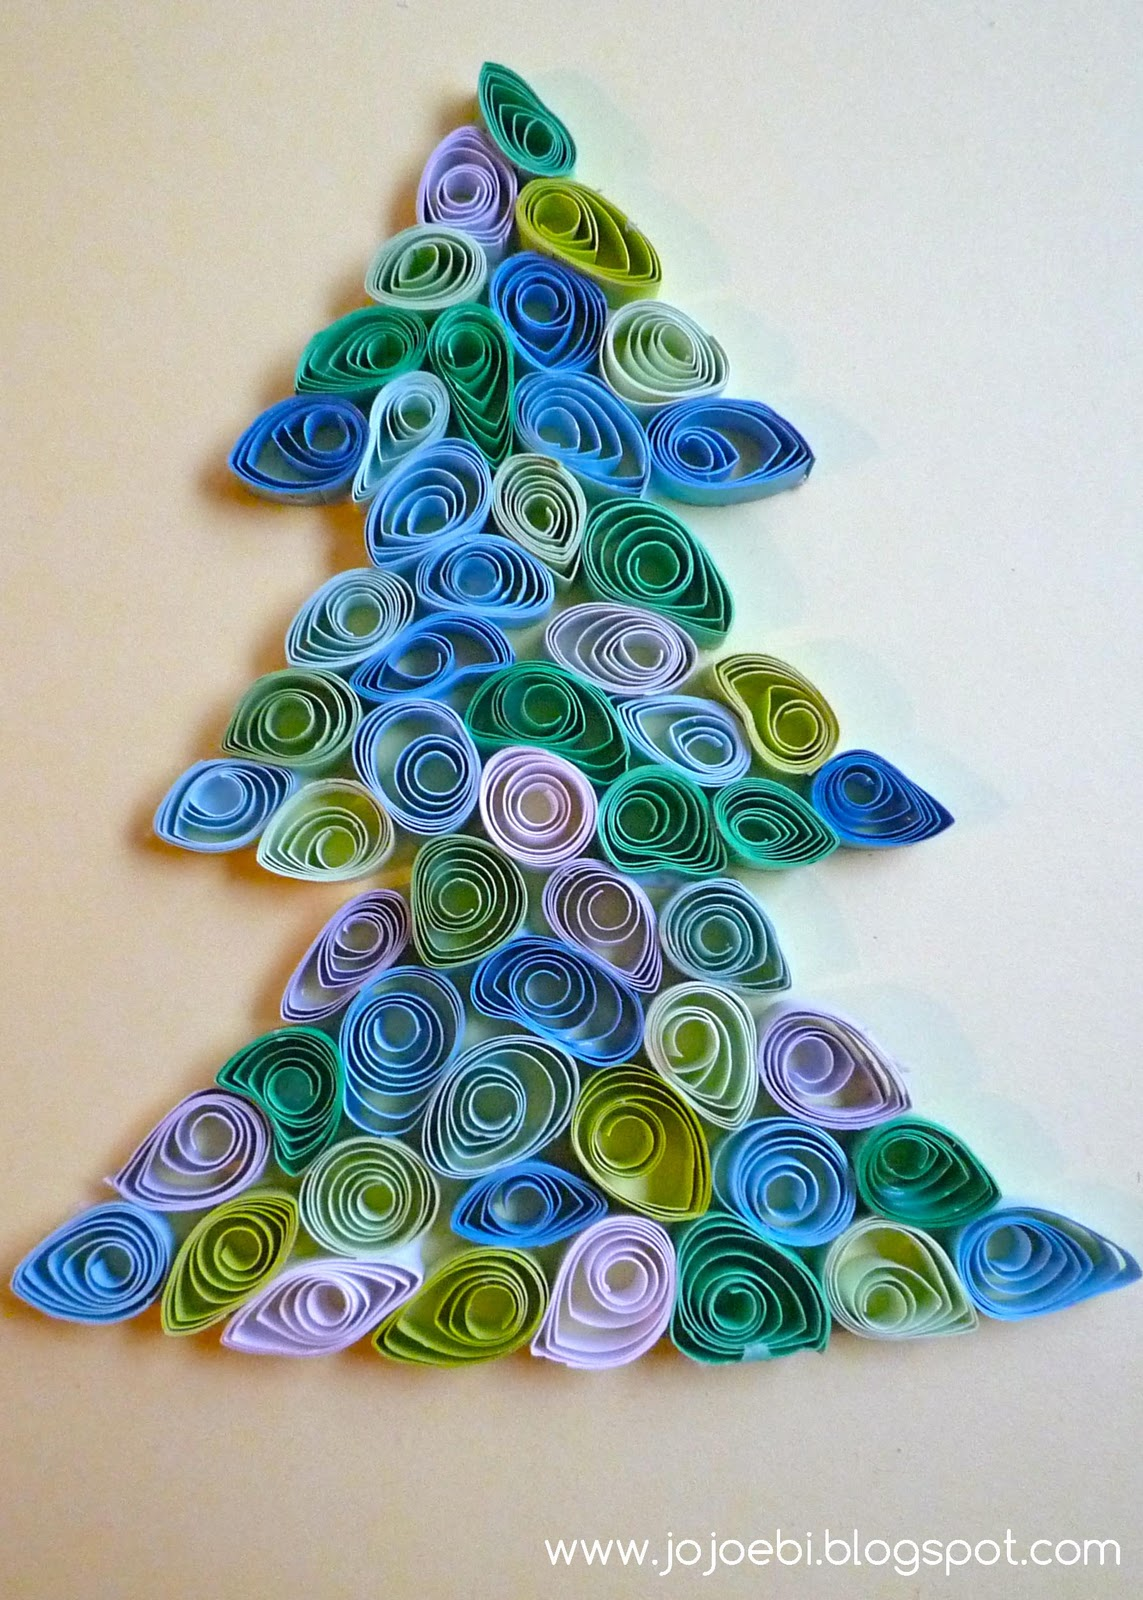 jojoebi designs: Quilling - a cheap and easy project